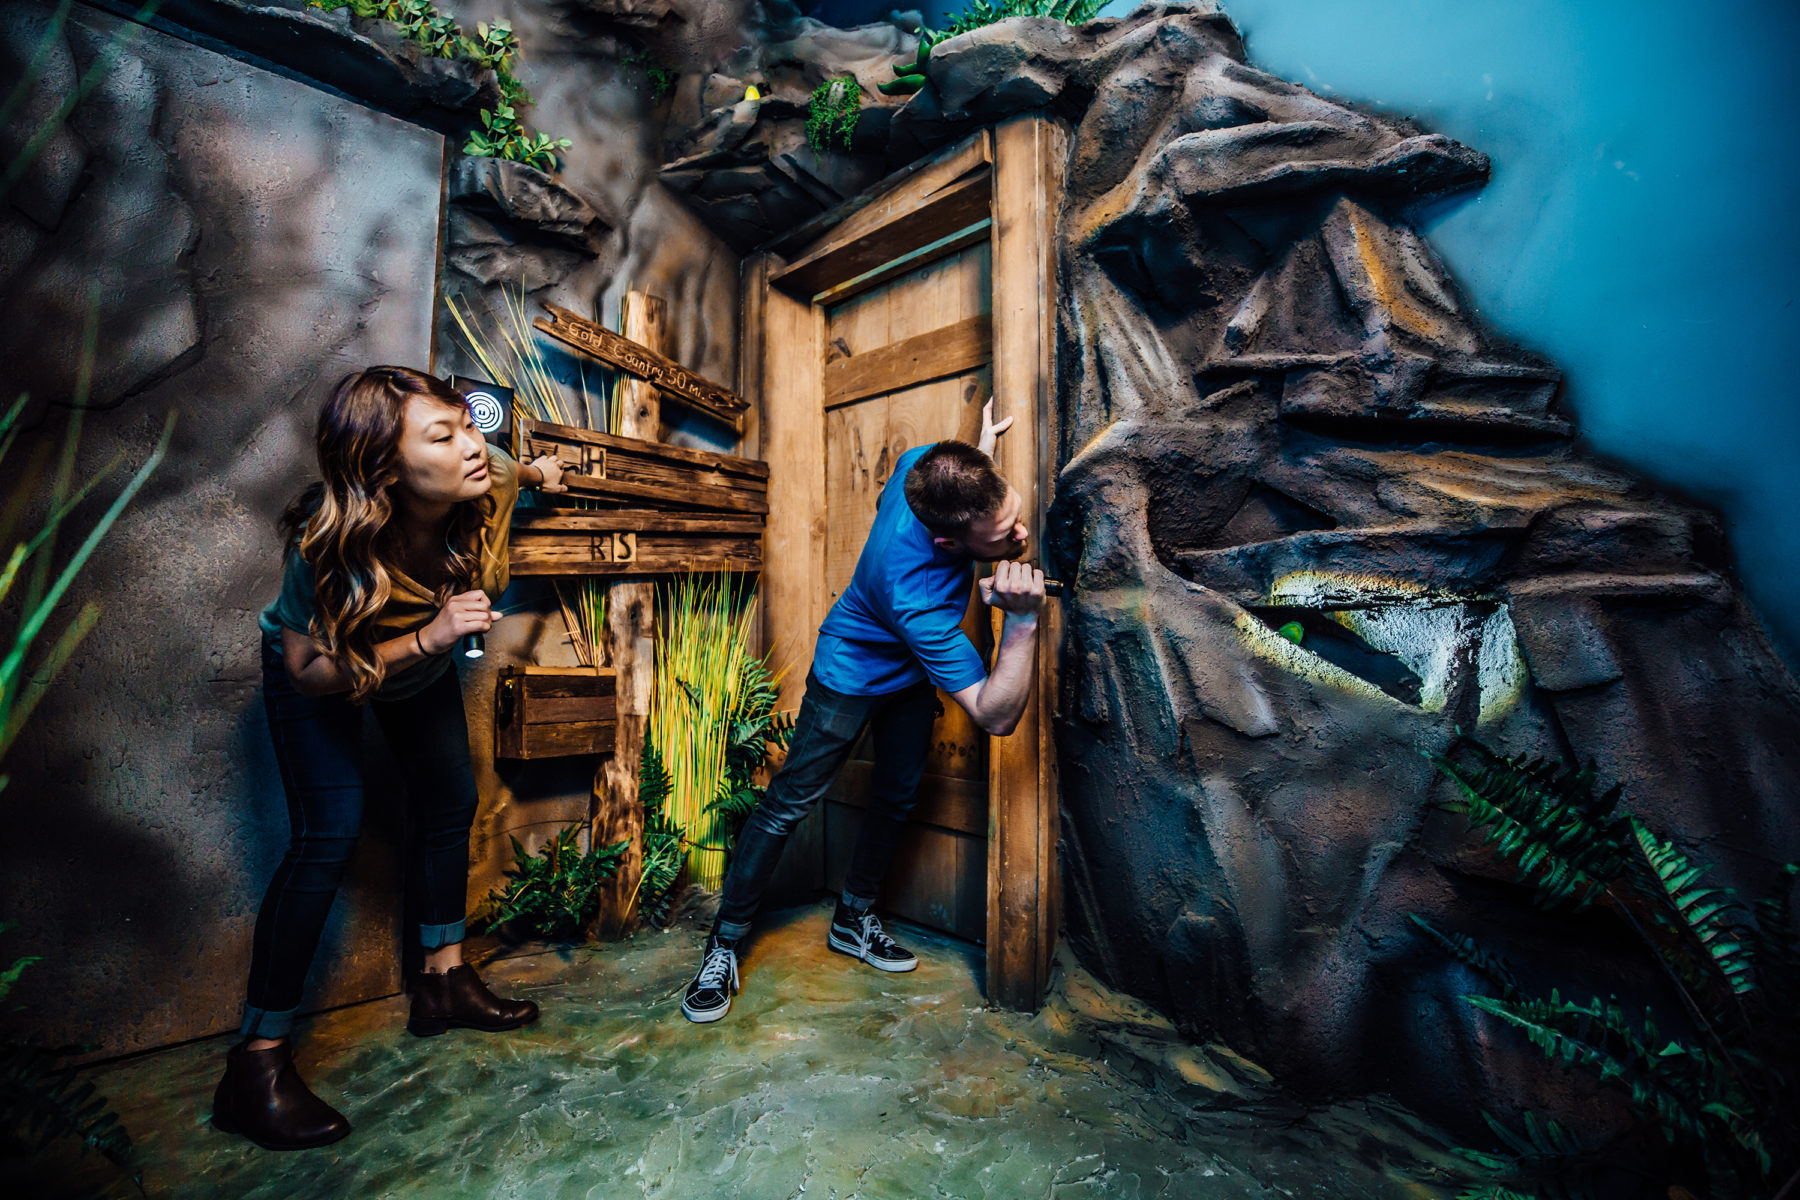 The Escape Game - Things To Do In Orlando Besides Theme Parks